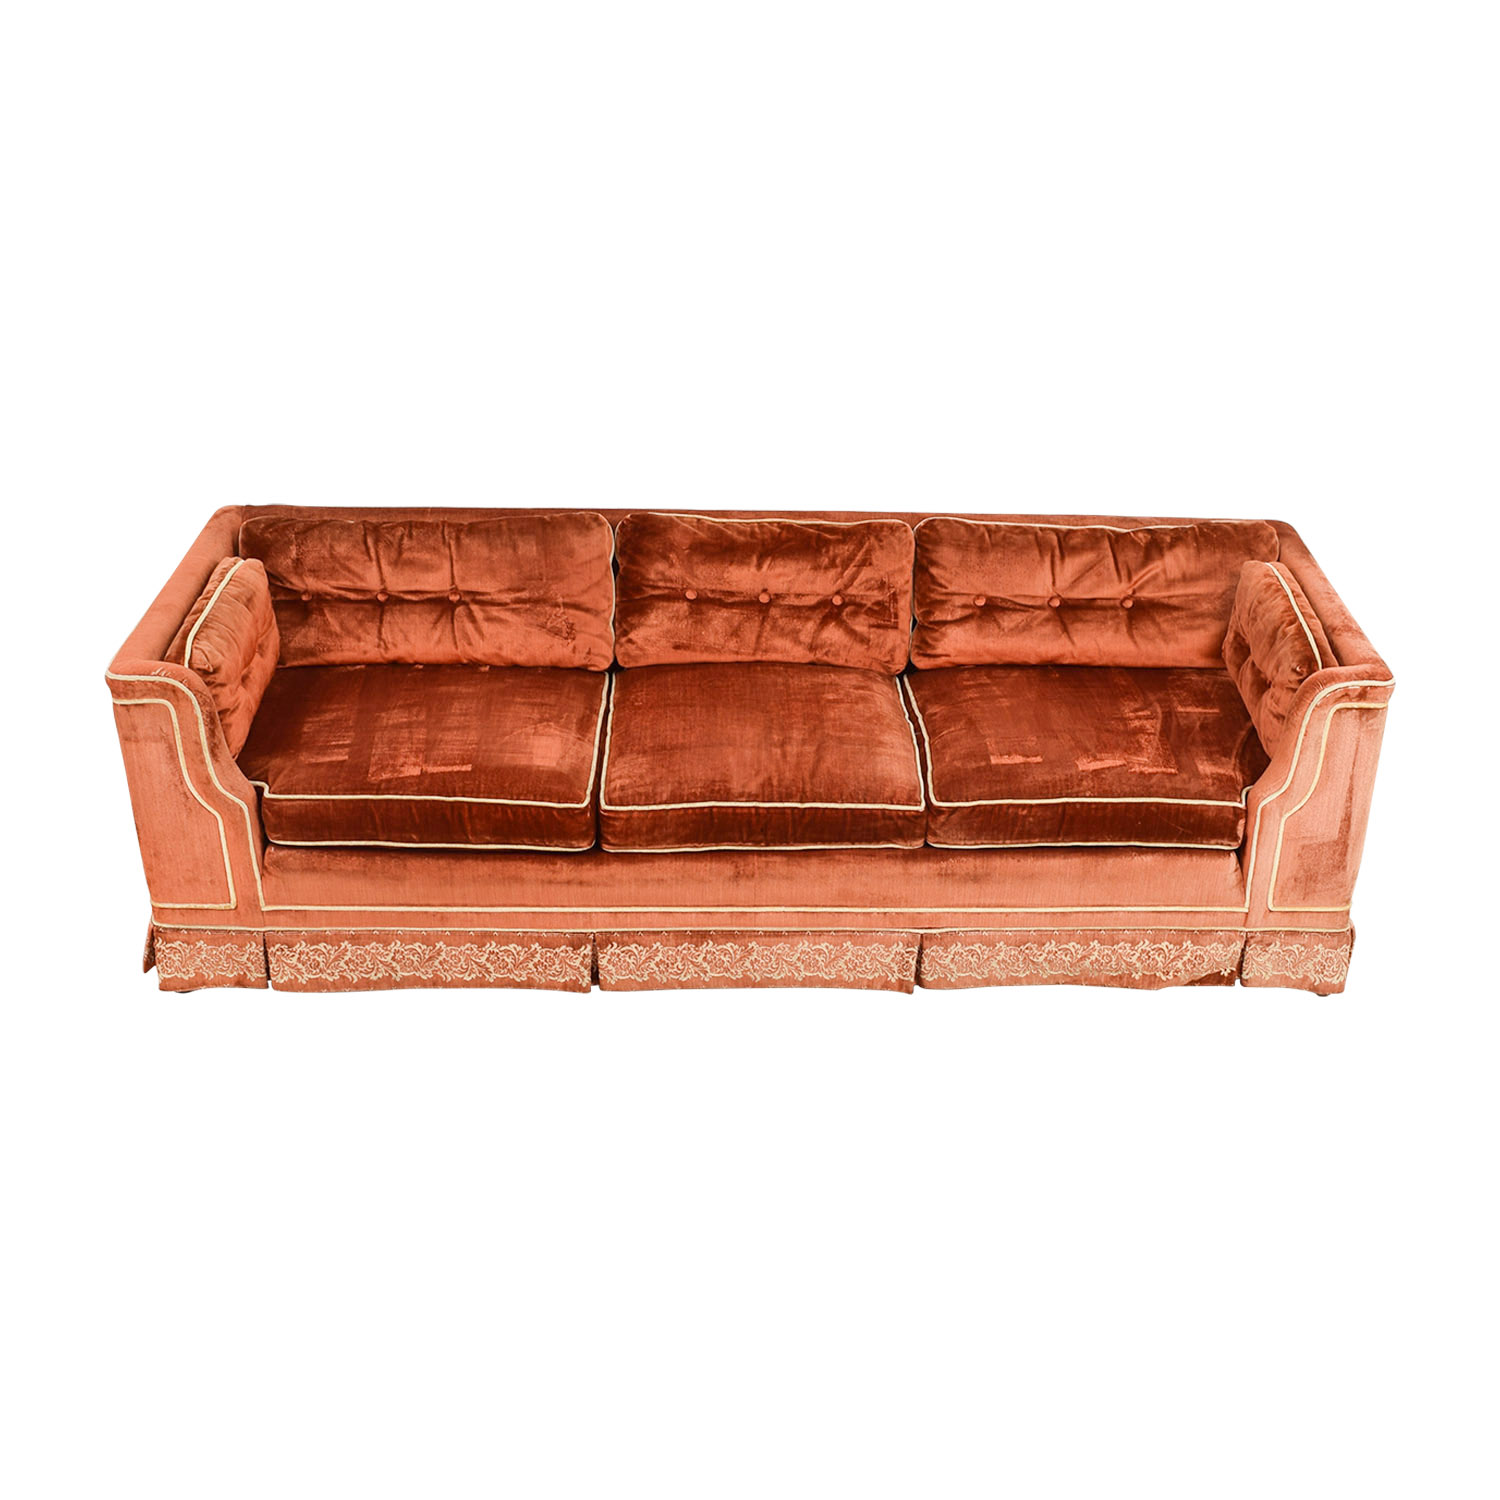 Orange Red Tufted Three-Cushion Sofa with Border Embroidery